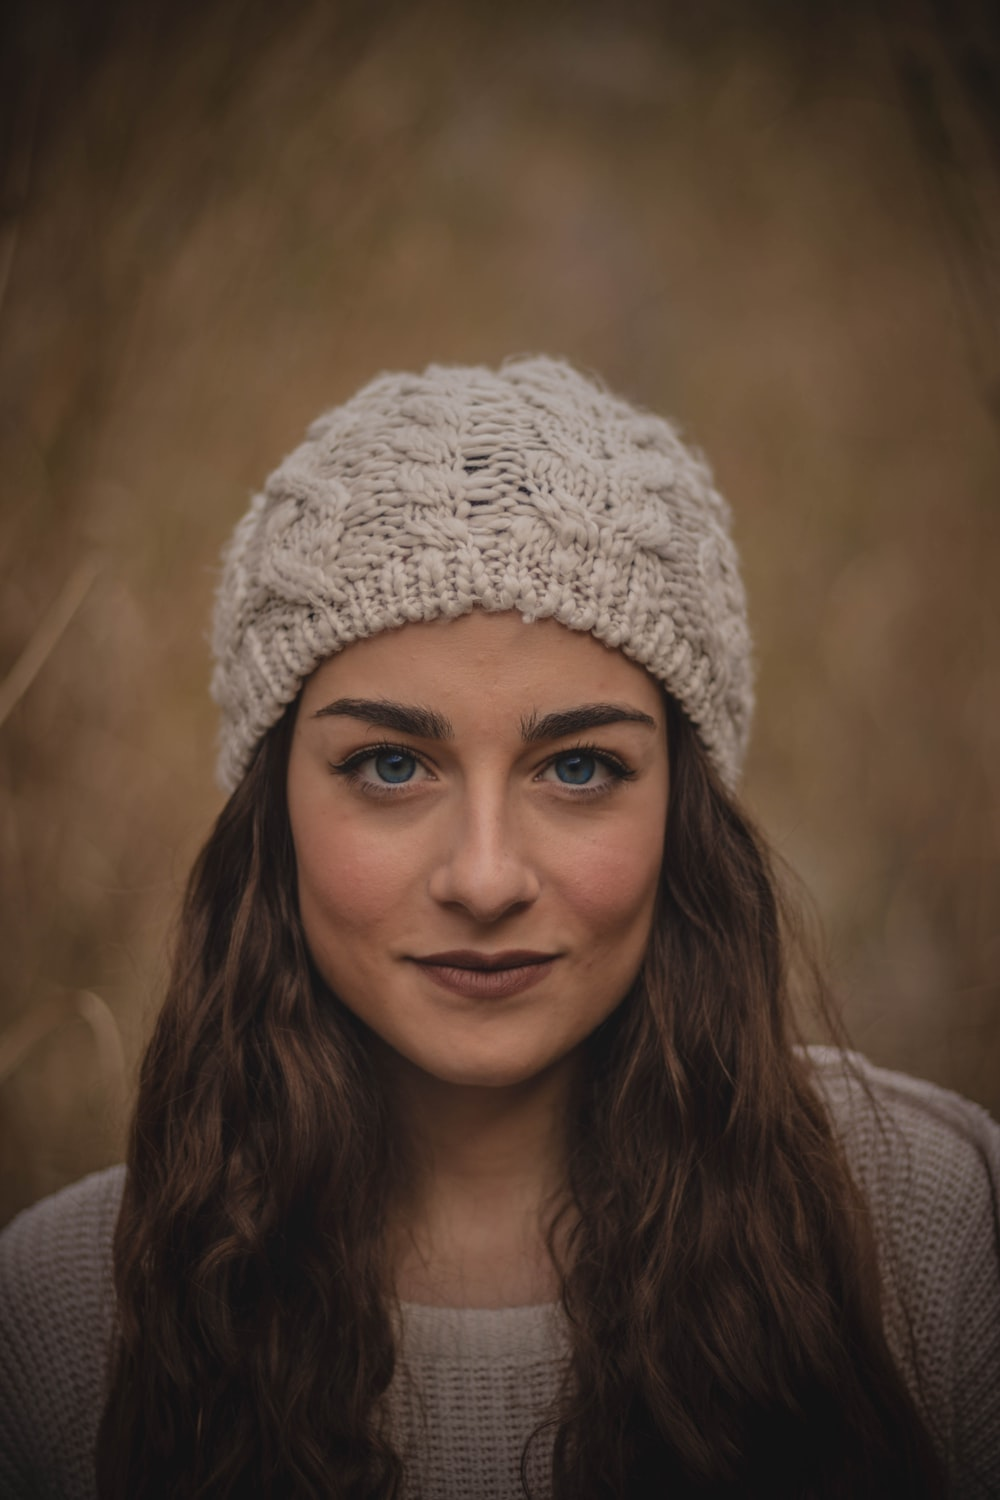 woman wearing a white beanie